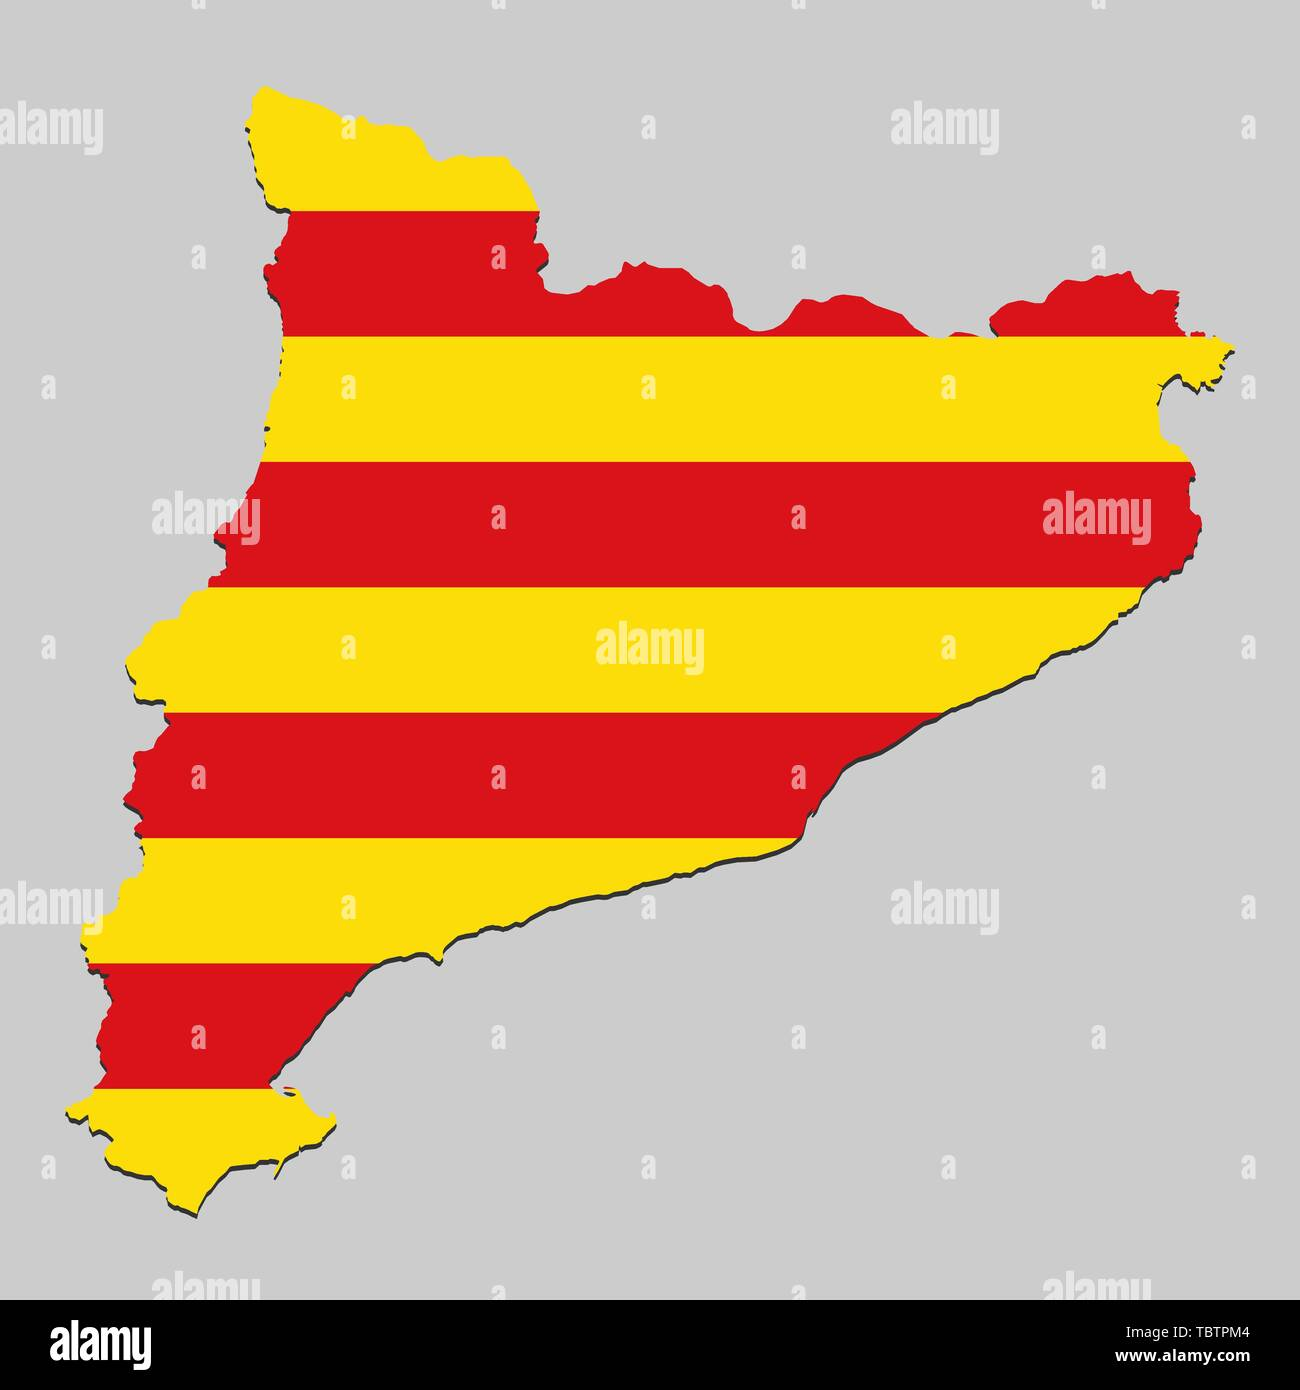 Map Of Spain Catalonia.Map Of Catalonia Stock Photos Map Of Catalonia Stock Images Alamy